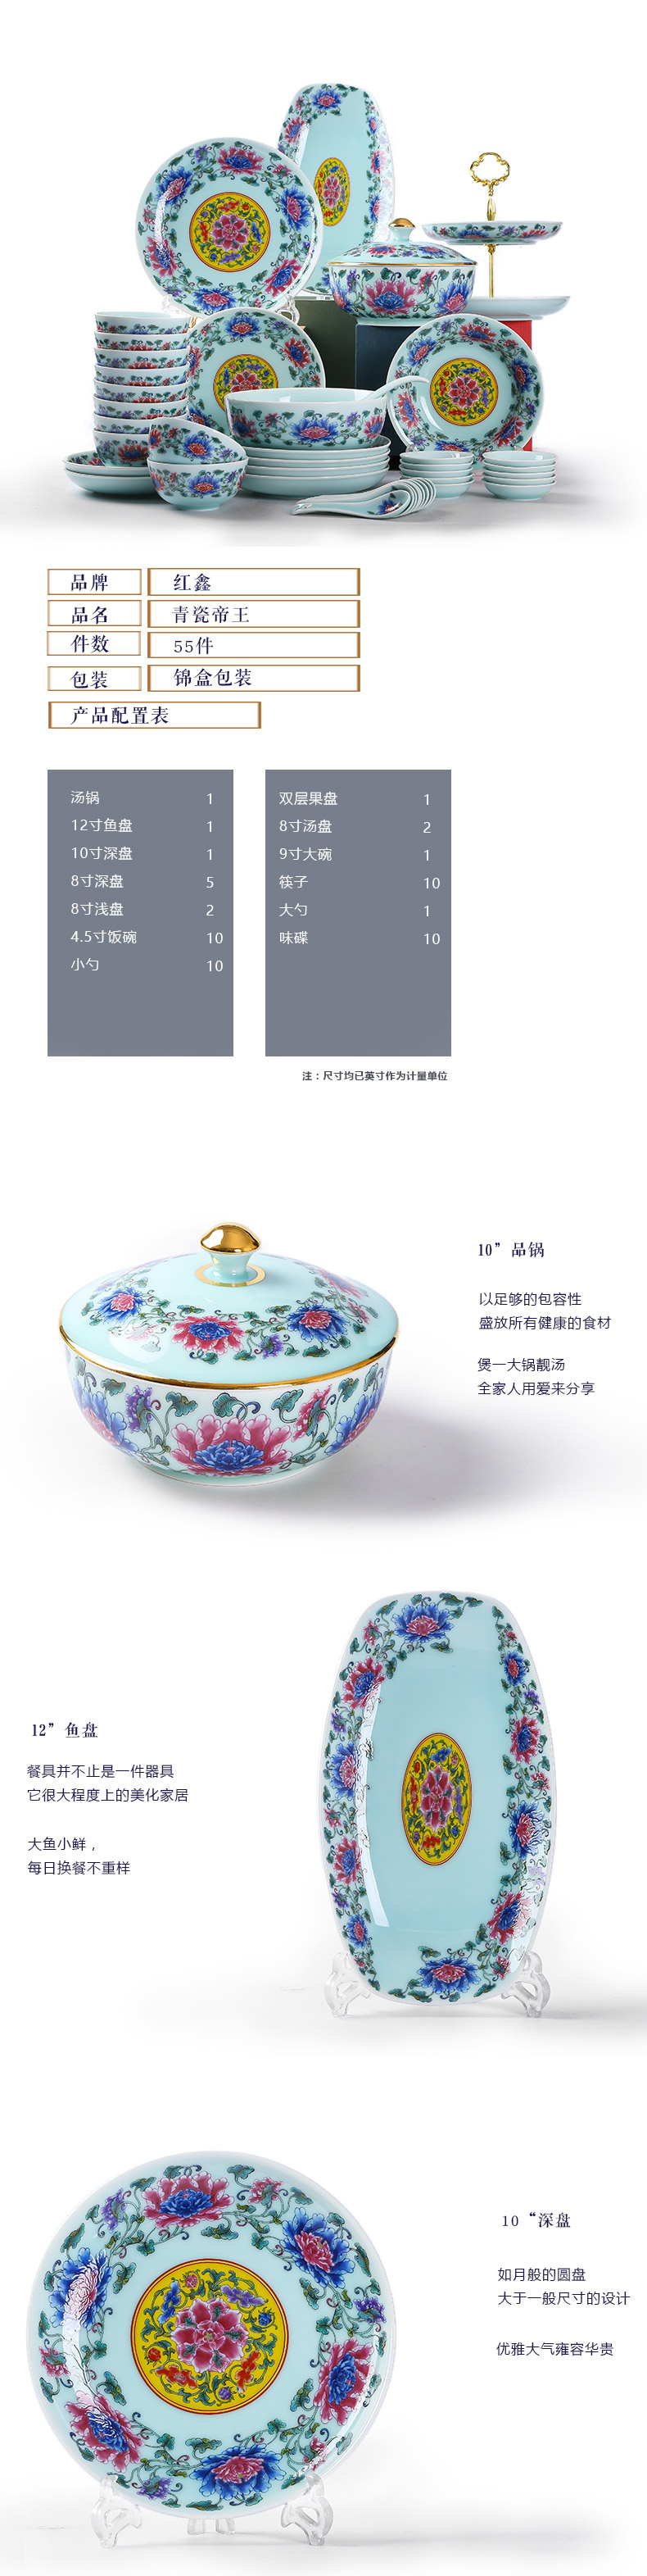 The dishes suit household of Chinese style up phnom penh high - end dishes combination of jingdezhen ceramic celadon tableware suit